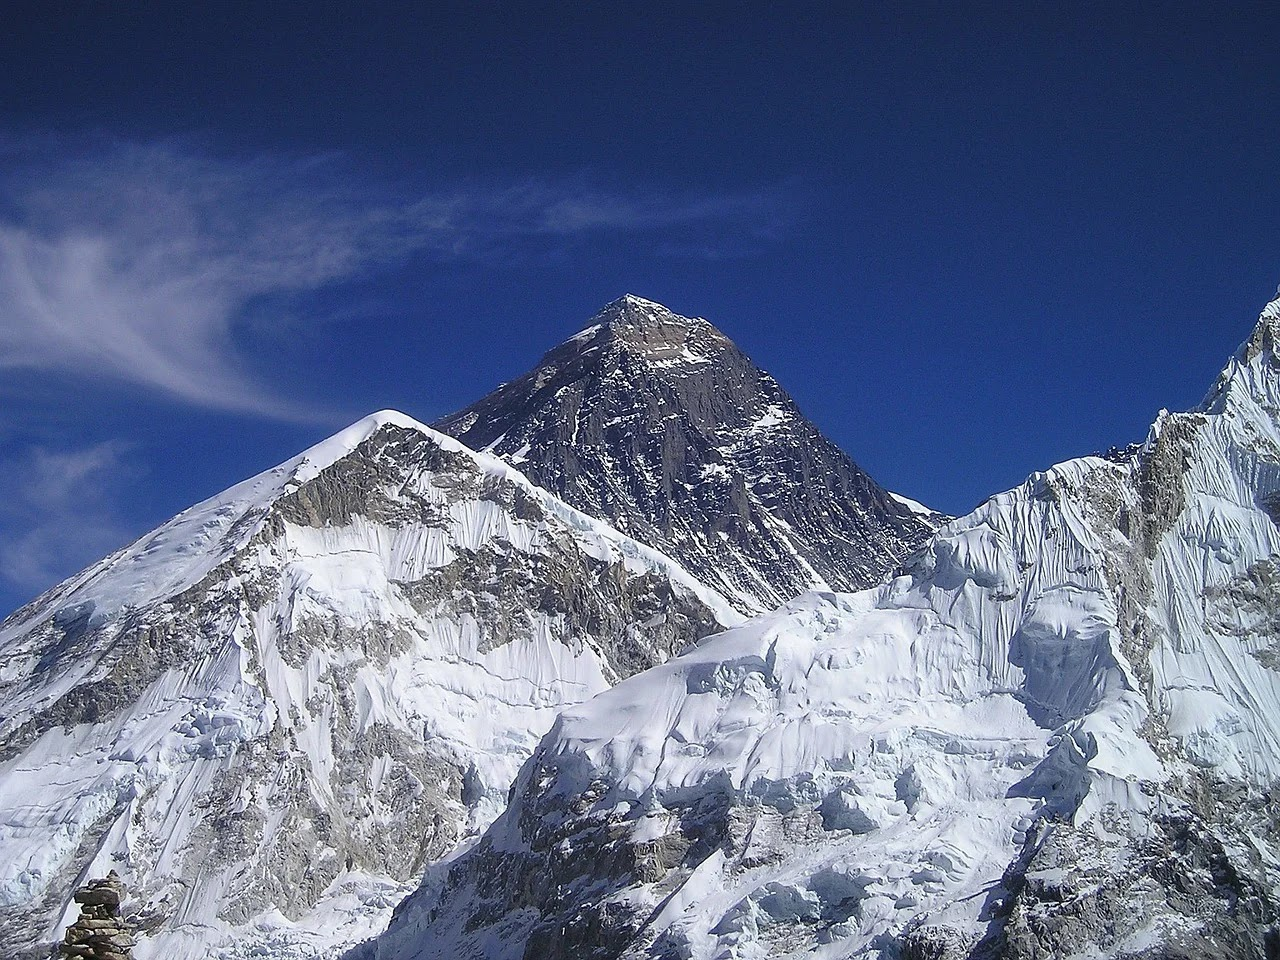 Disturbing Discovery Of Microplastic Near Summit Of Mount Everest ㅡ 8,440m Above Sea Level